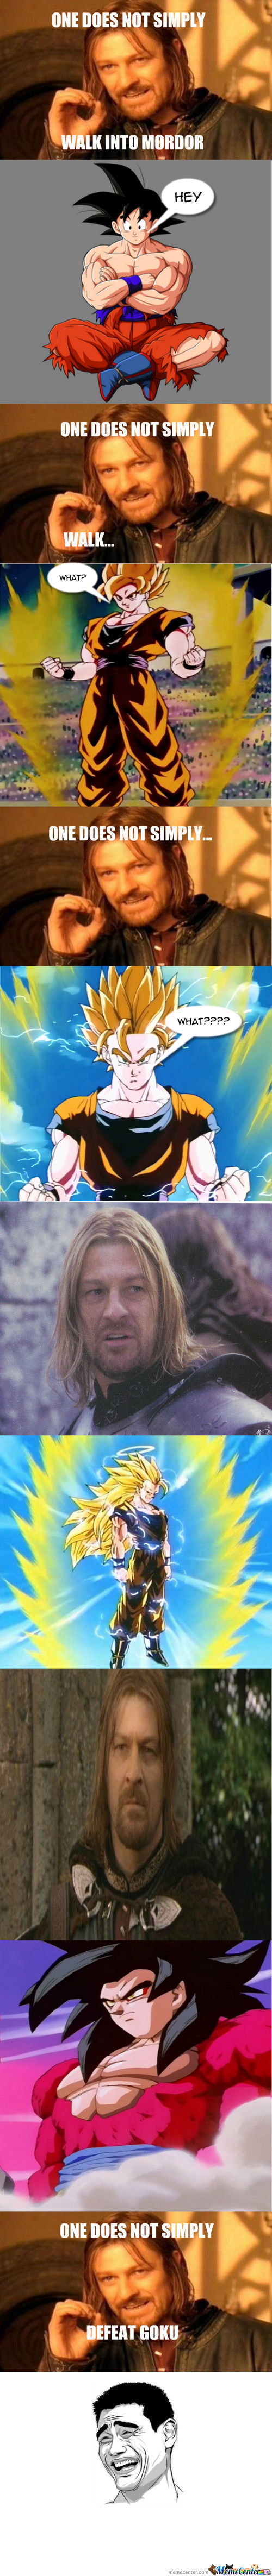 One Does Not Simply Mess With Goku